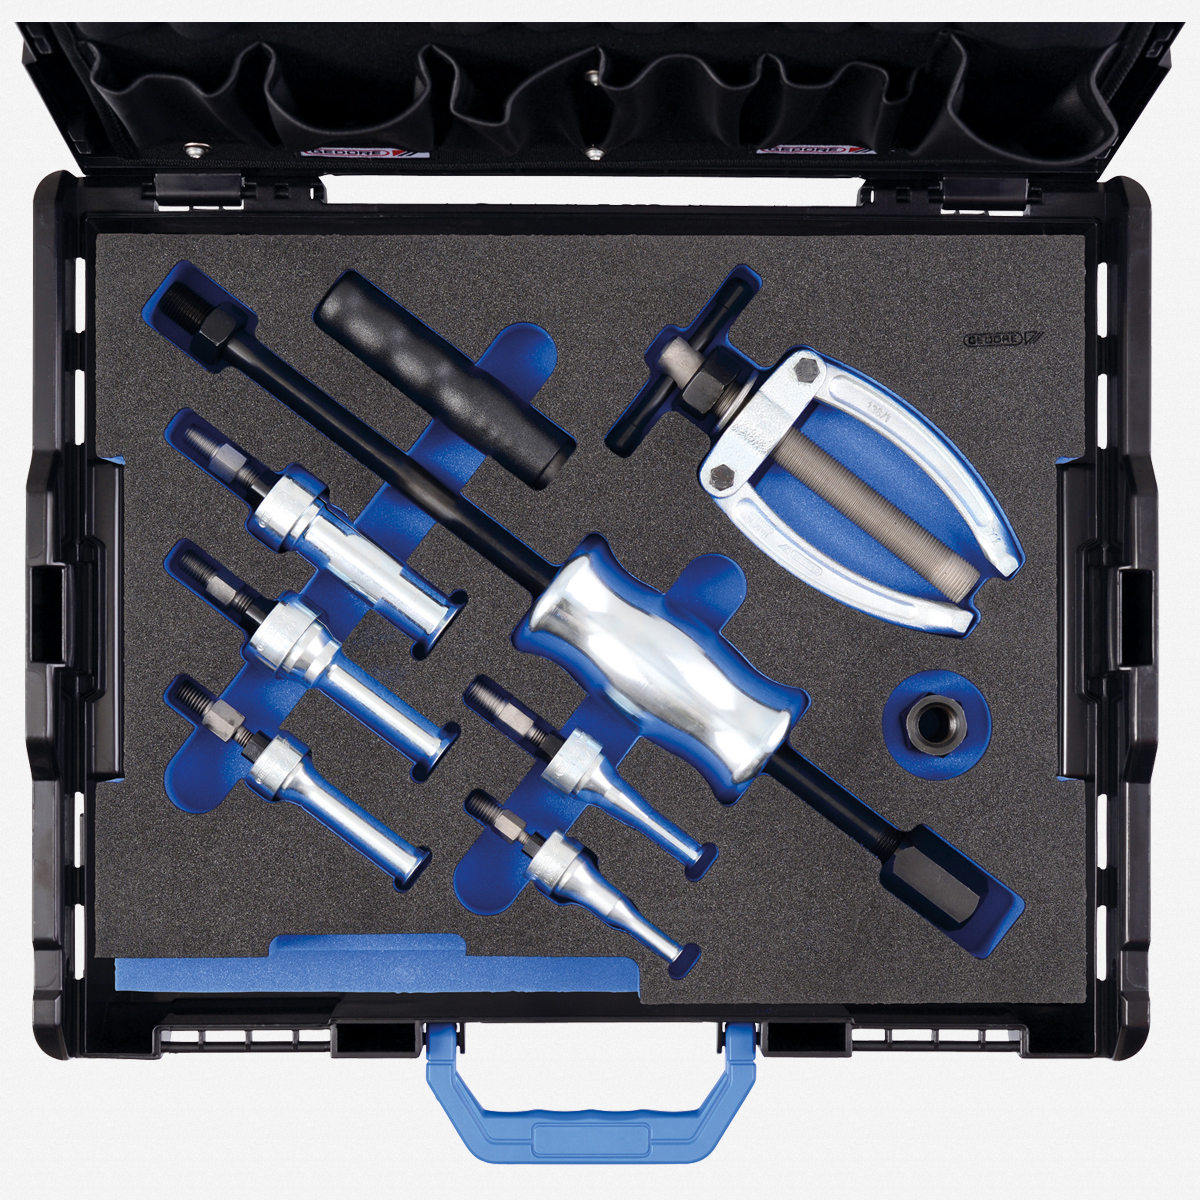 Gedore 1100-1.30 Internal extractor assortment, in L-BOXX 136 - KC Tool